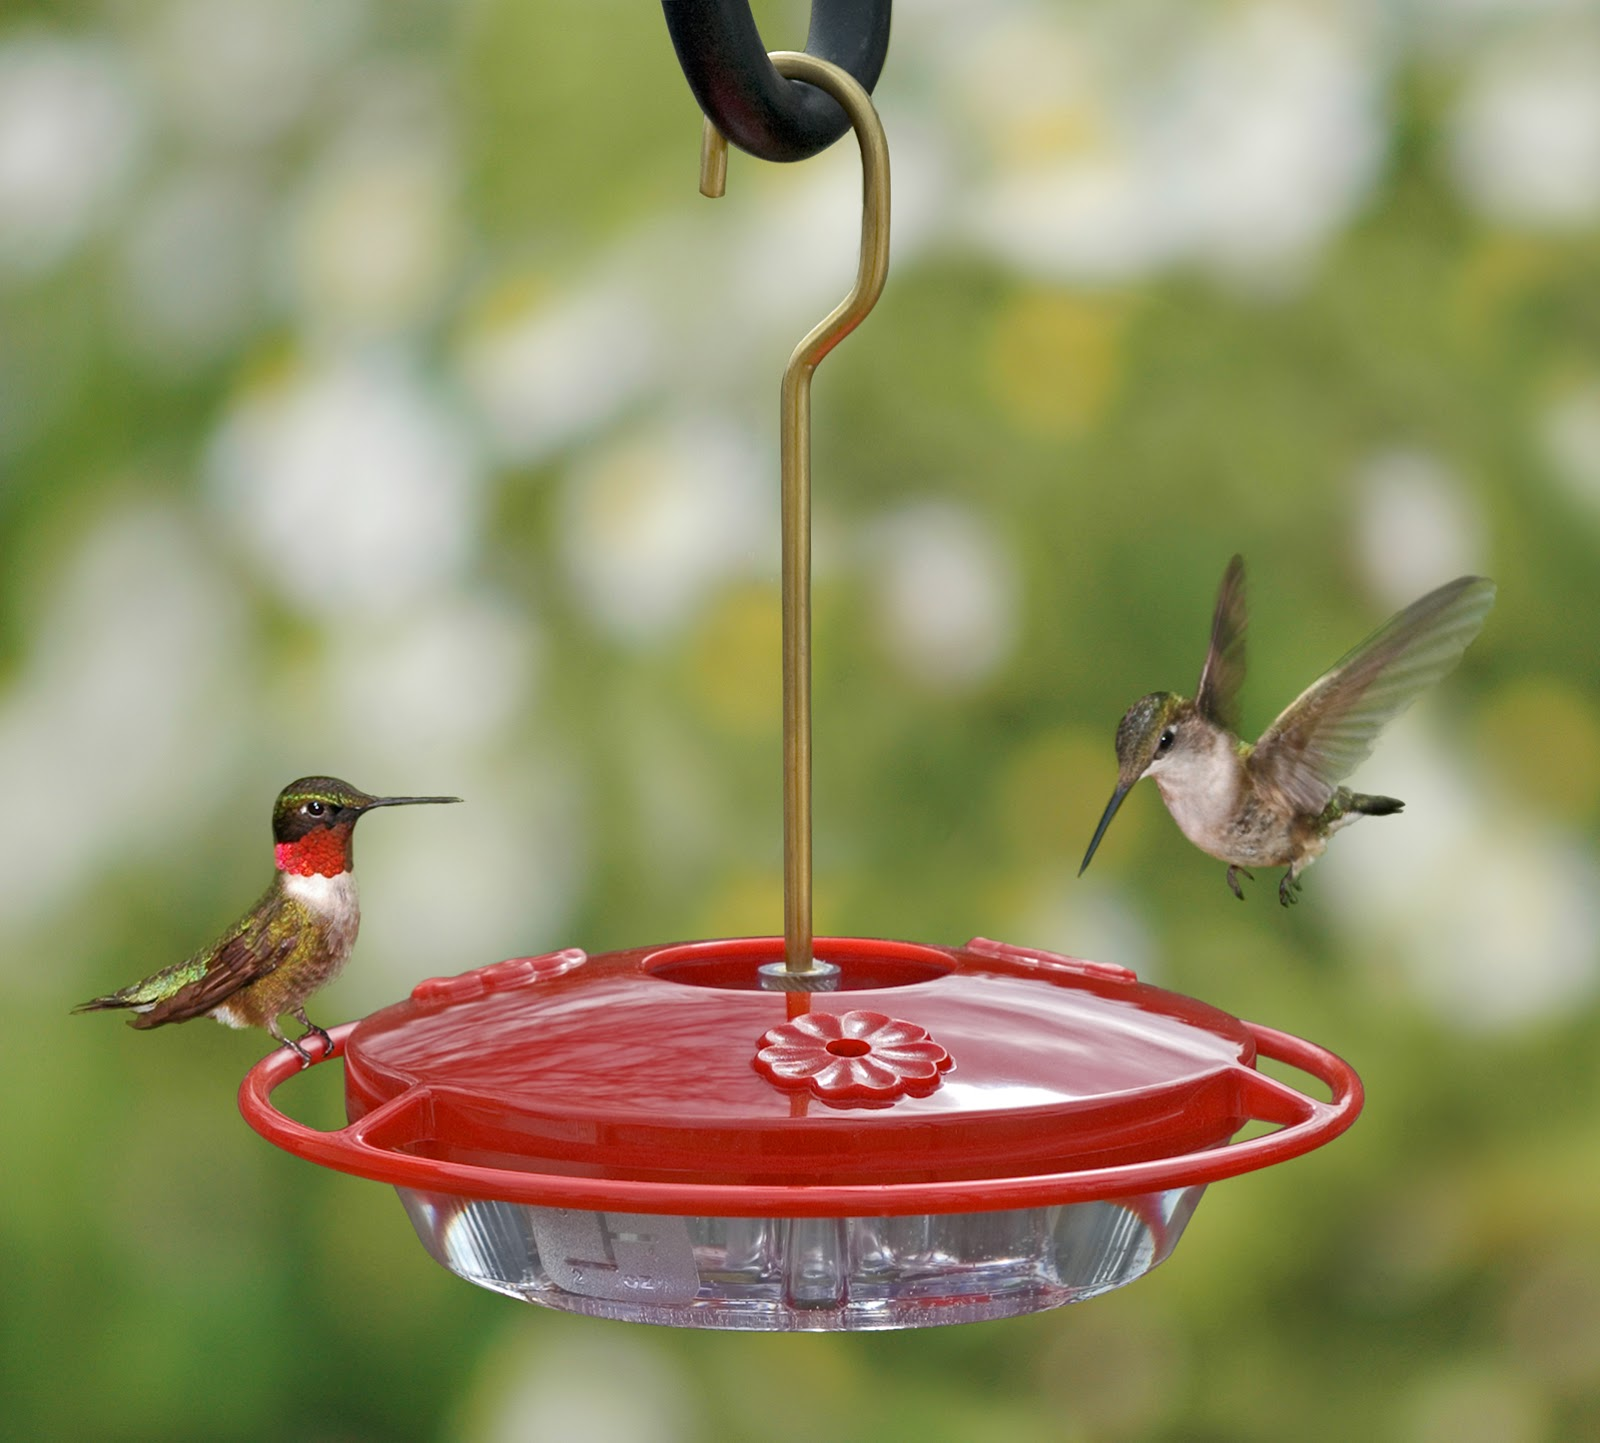 dr yard alabama trussville hummingbird to and sargent study have my master bird hummer bander red be of i the hanging said best in feeder bob president jbs group your feeders inc now